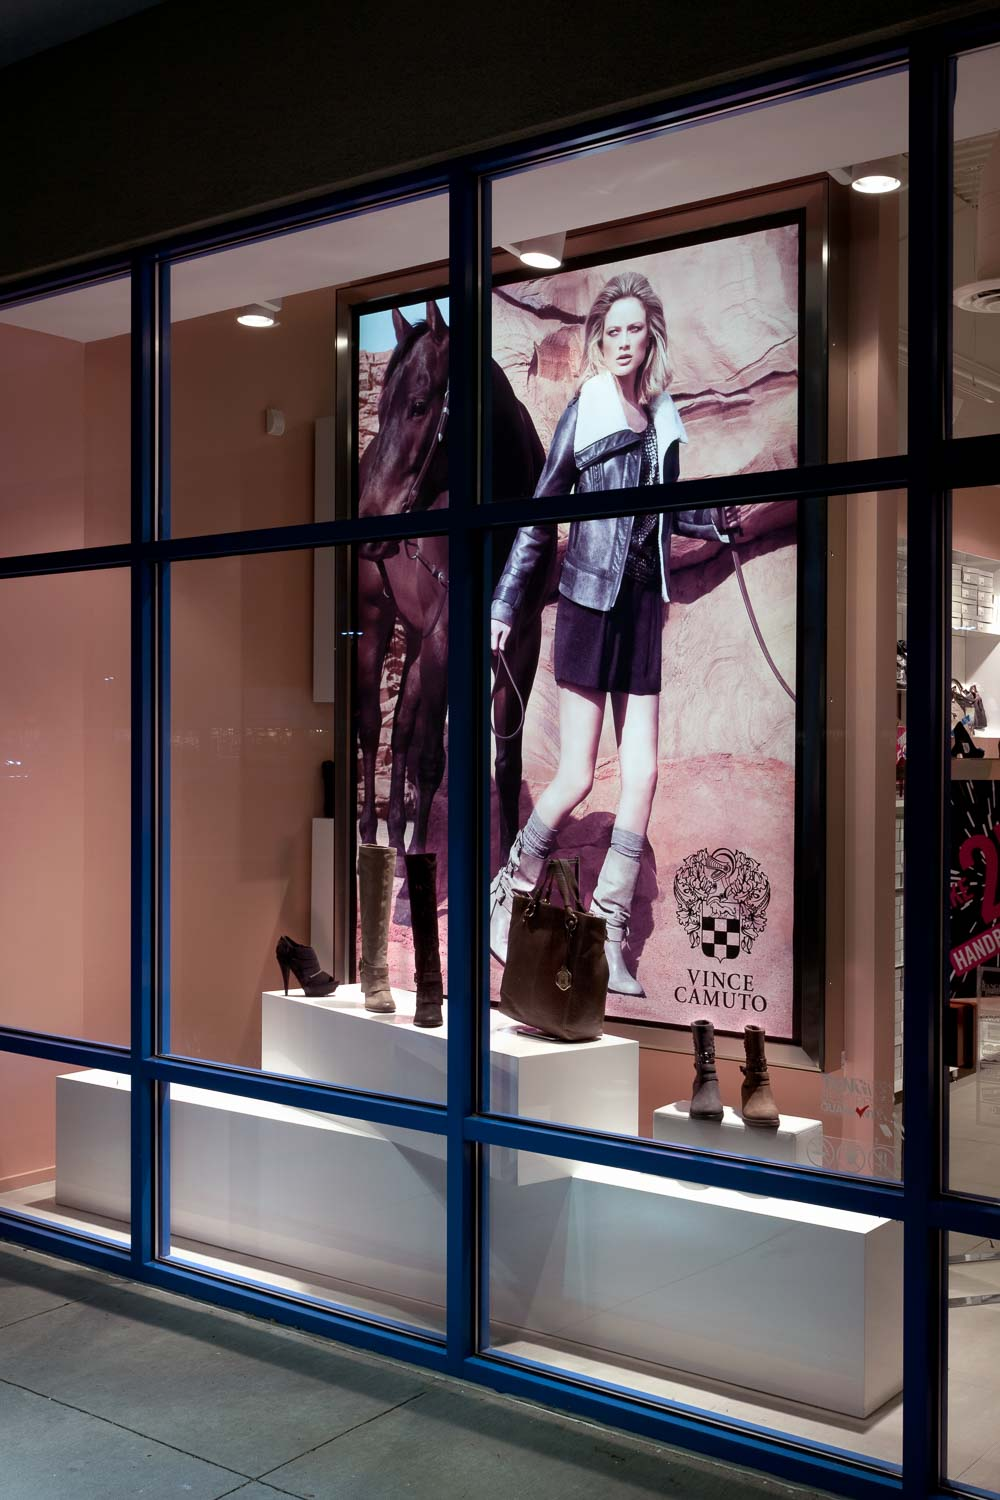 Vince Camuto Outlet Store Design 05.jpg